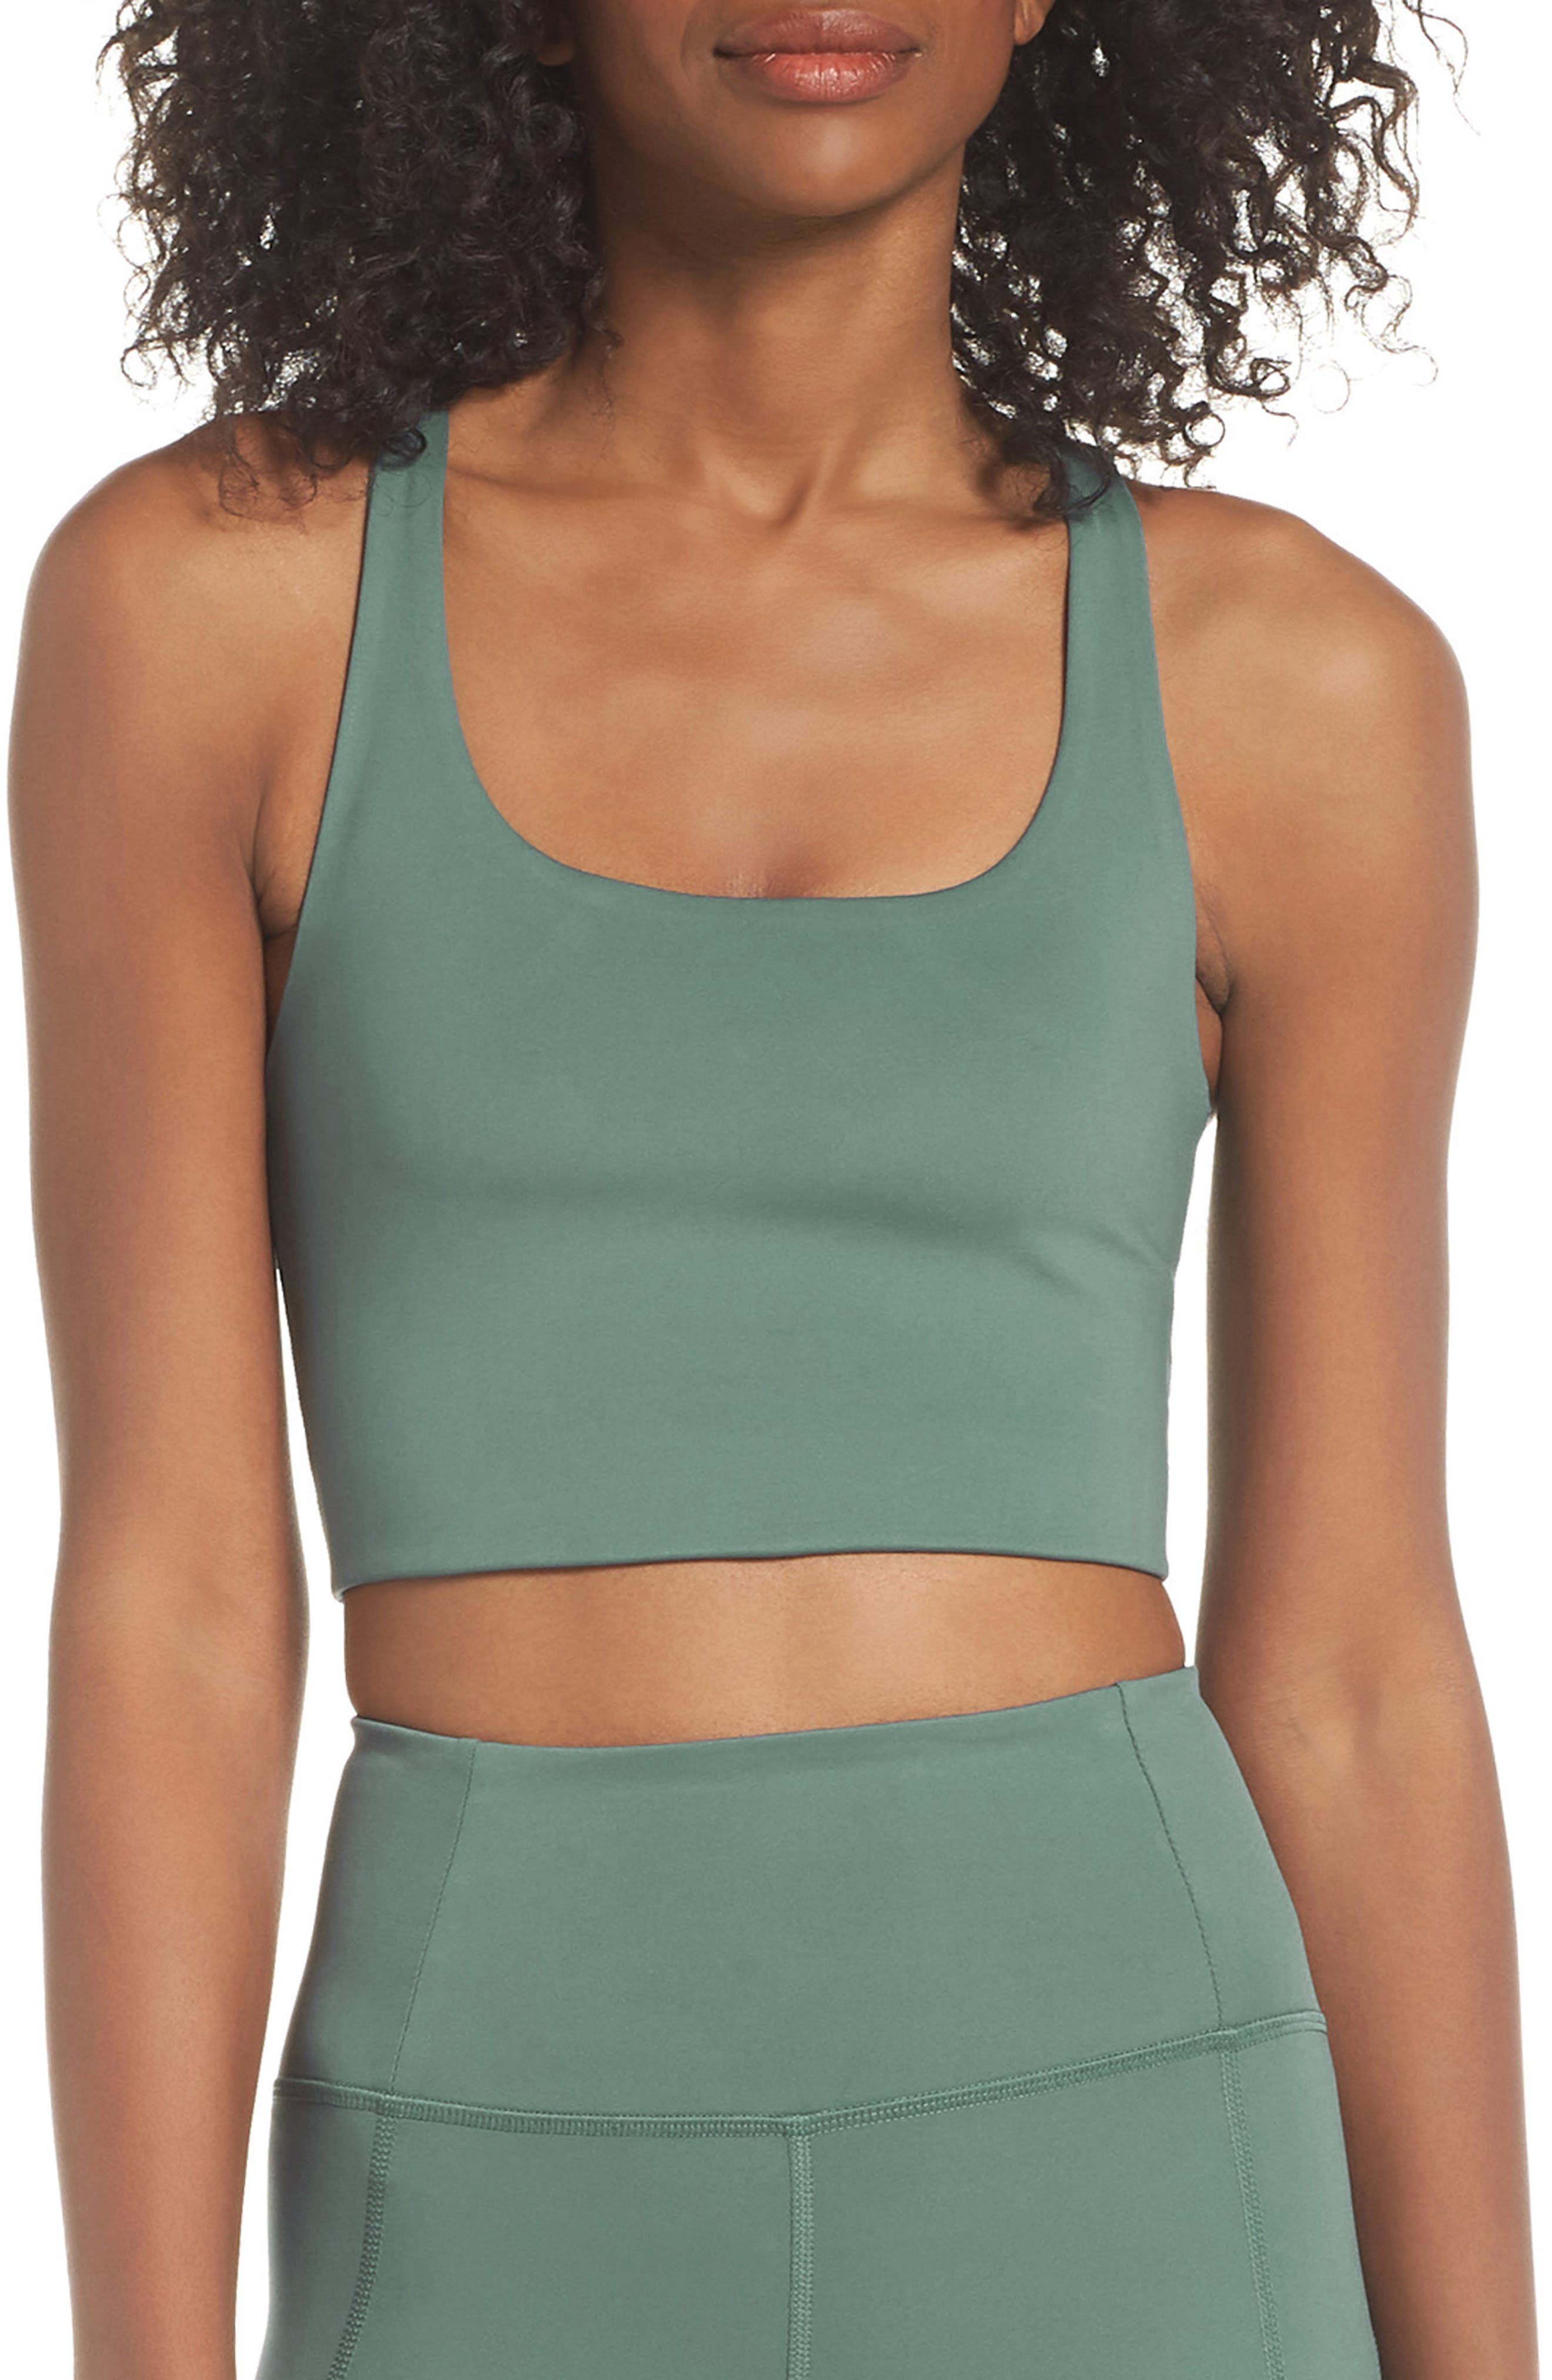 Girlfriend Collective Paloma Sports Bra, Green